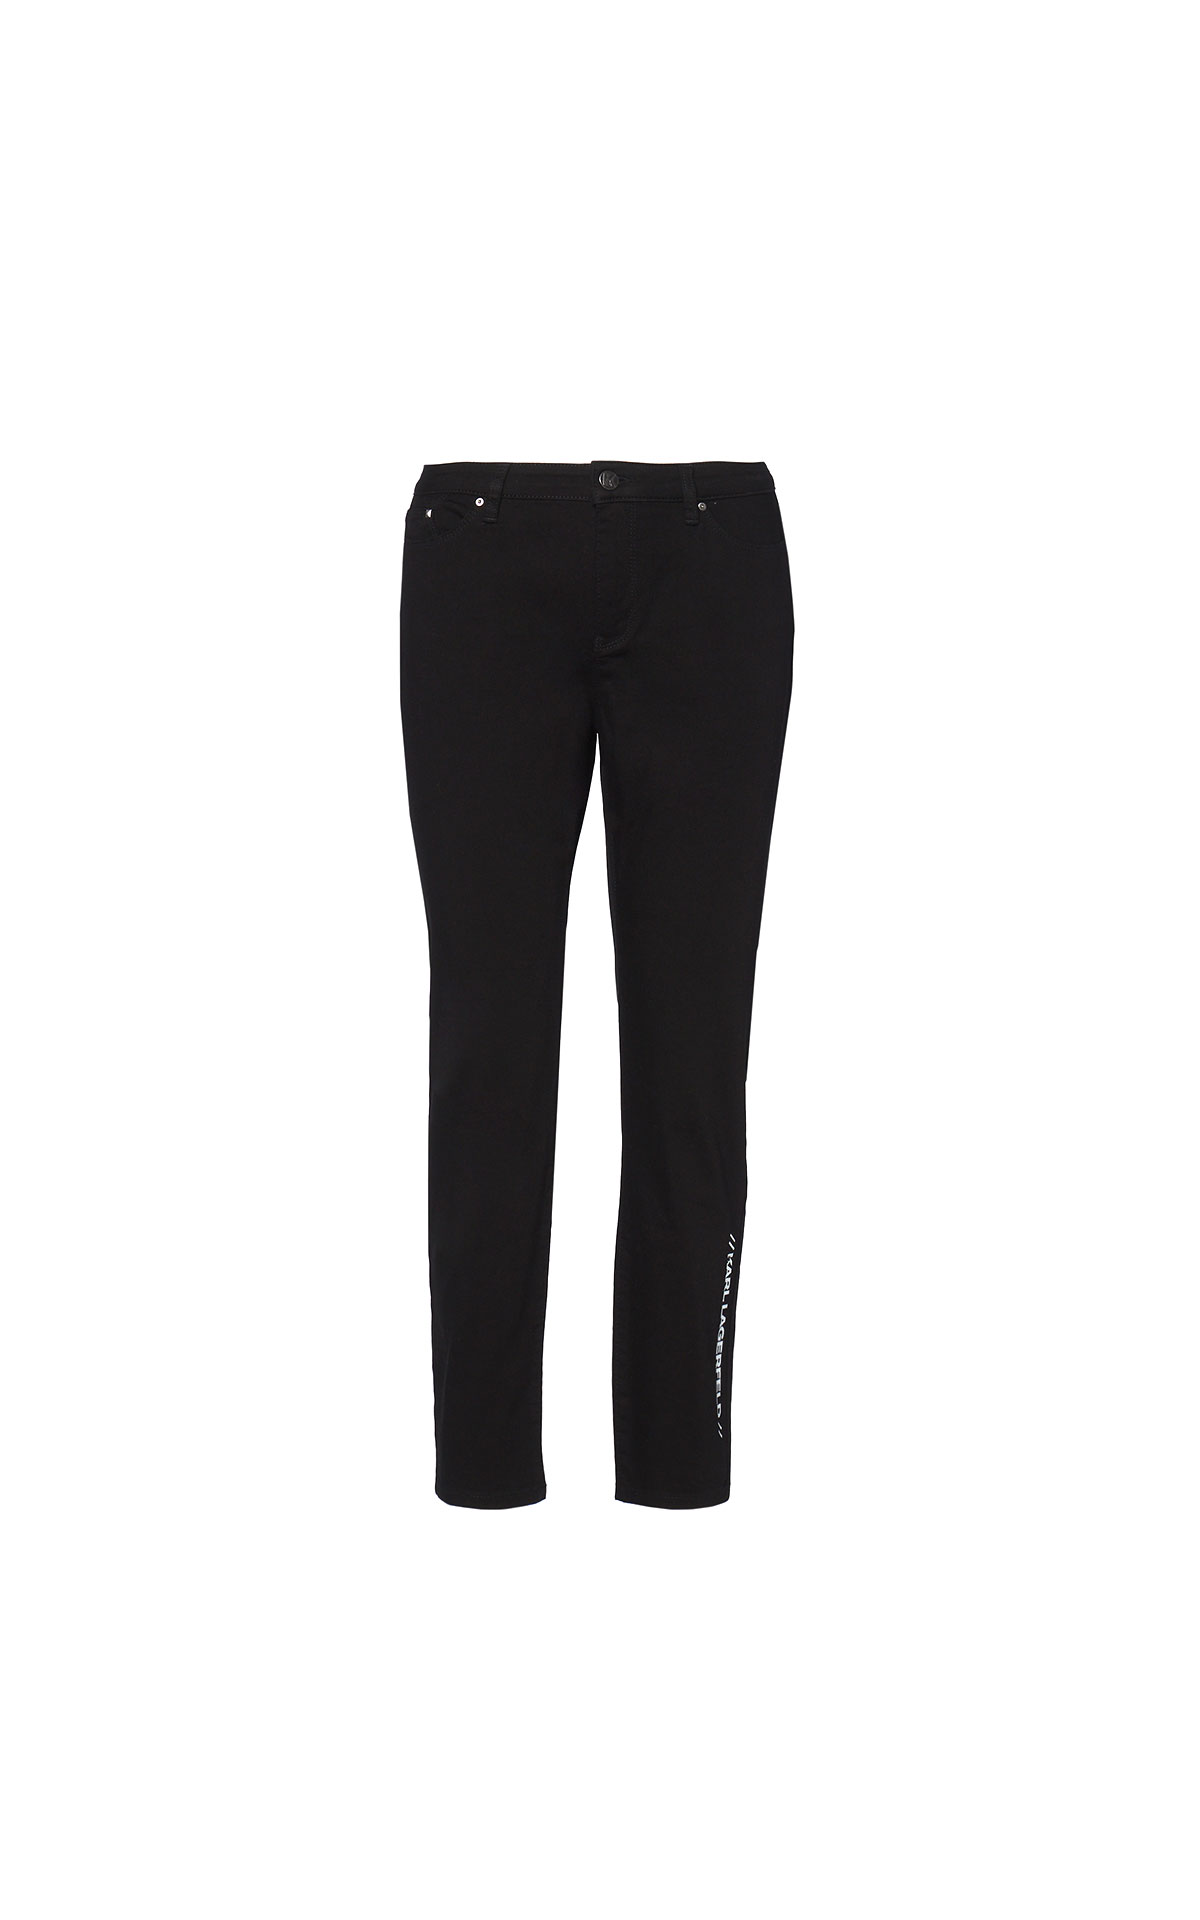 Karl Lagerfeld Athleisure denim at The Bicester Village Shopping Collection